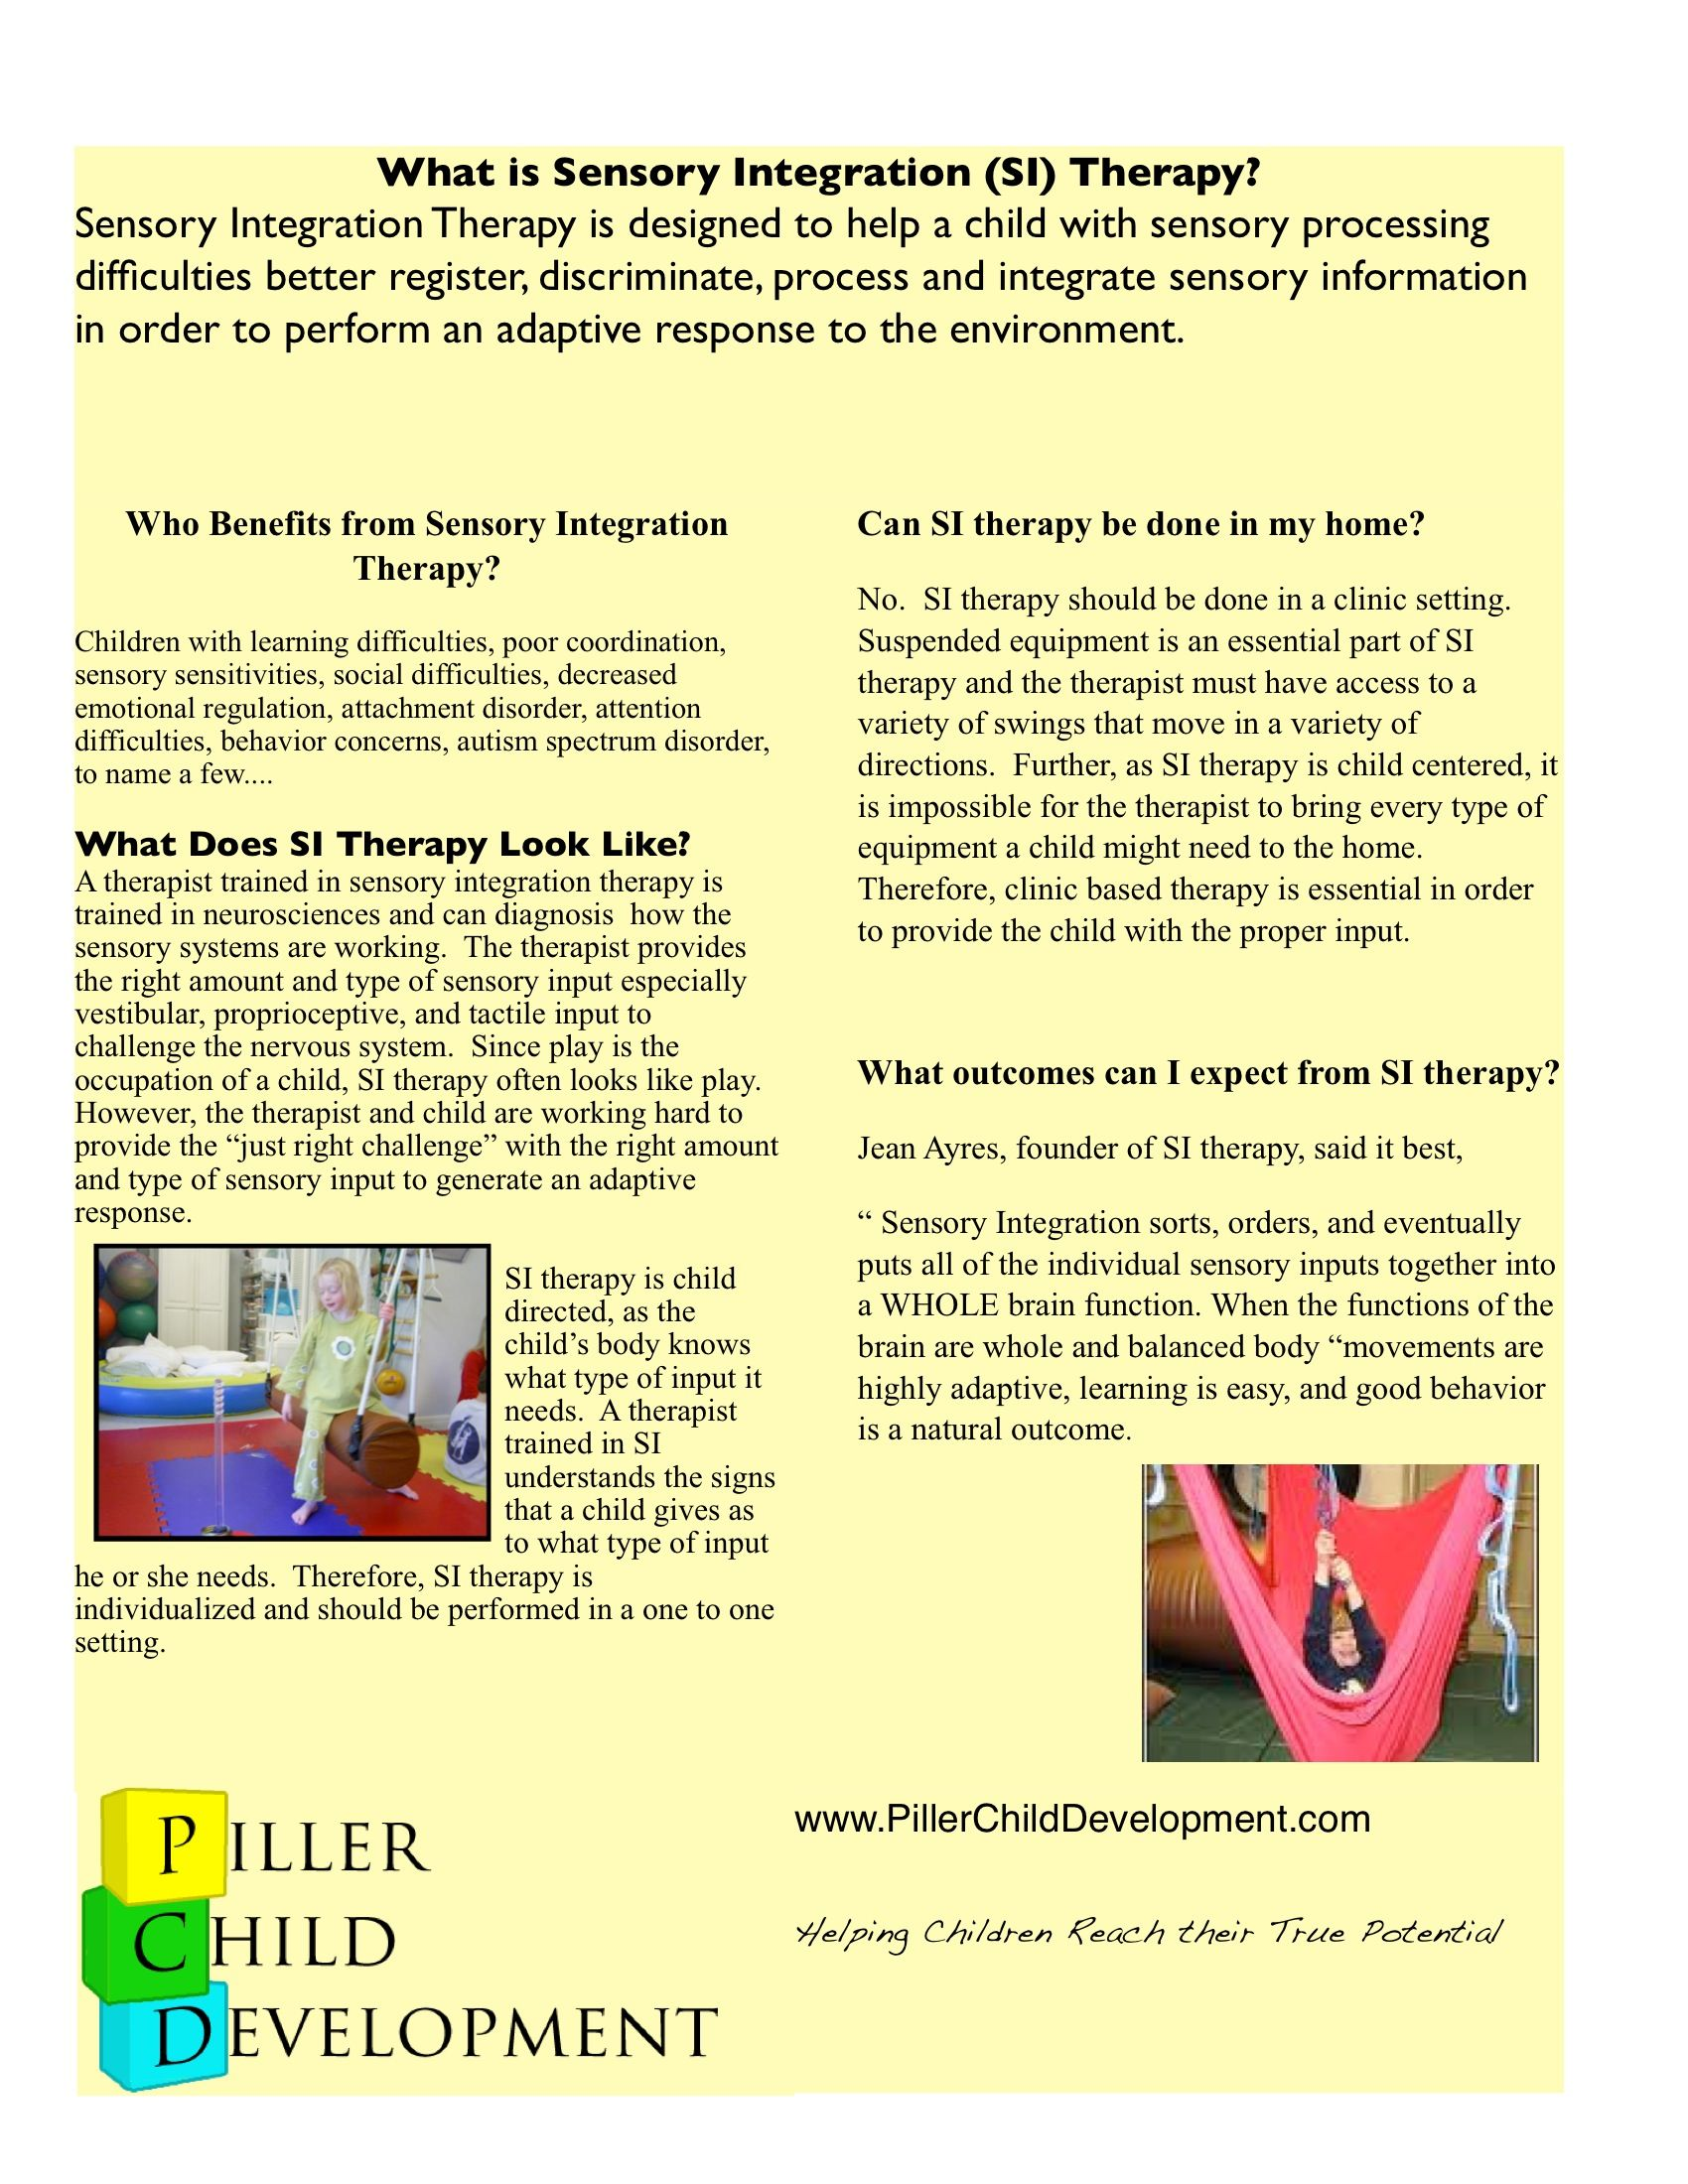 What Is Sensory Integration Therapy